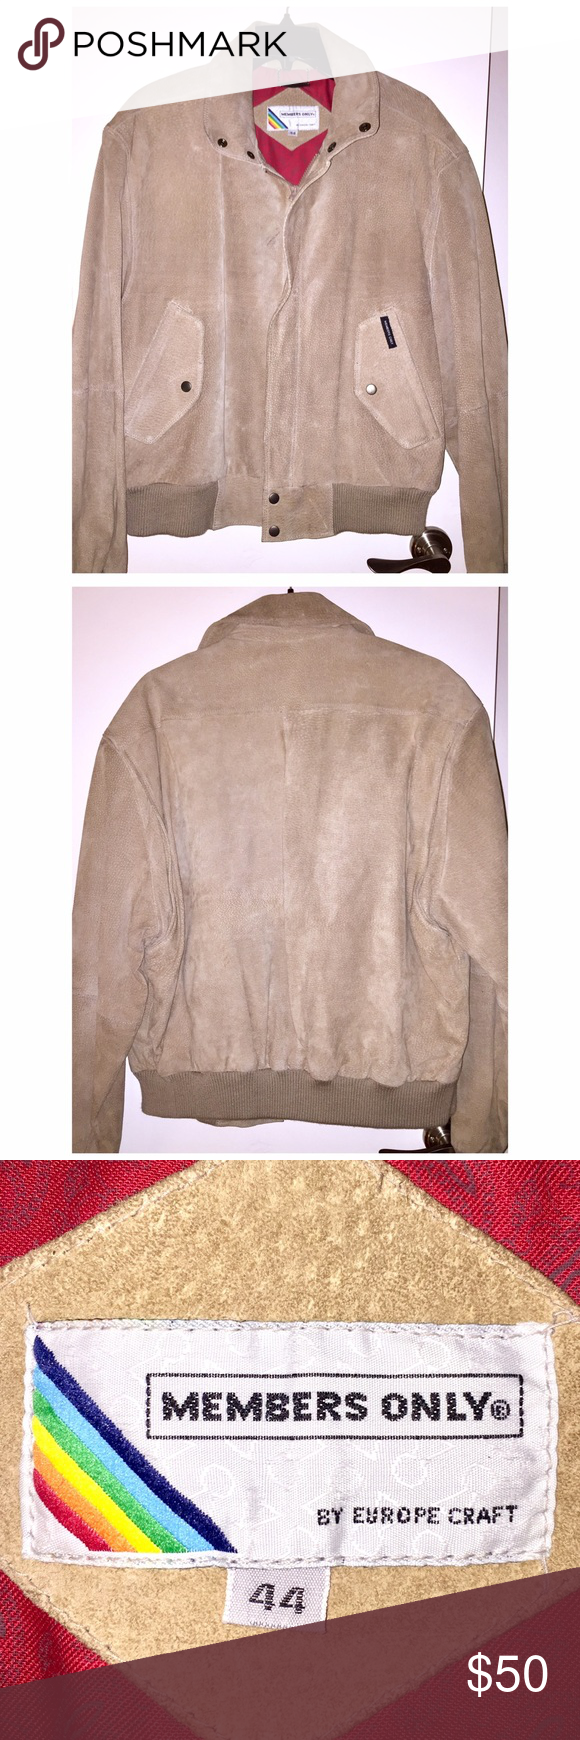 Members Only Leather Jacket ⬇️PRICE DROP⬇️VINTAGE Members Only Rainbow Label Leather Jacket in size 44 comes in VERY GOOD condition! Gorgeous 100% genuine leather in light tan color. Rainbow tag. Very rare! There is one mark near the zipper (see photo) but in otherwise EXCELLENT condition. Amazing rare find!!!❤️ Members Only Jackets & Coats